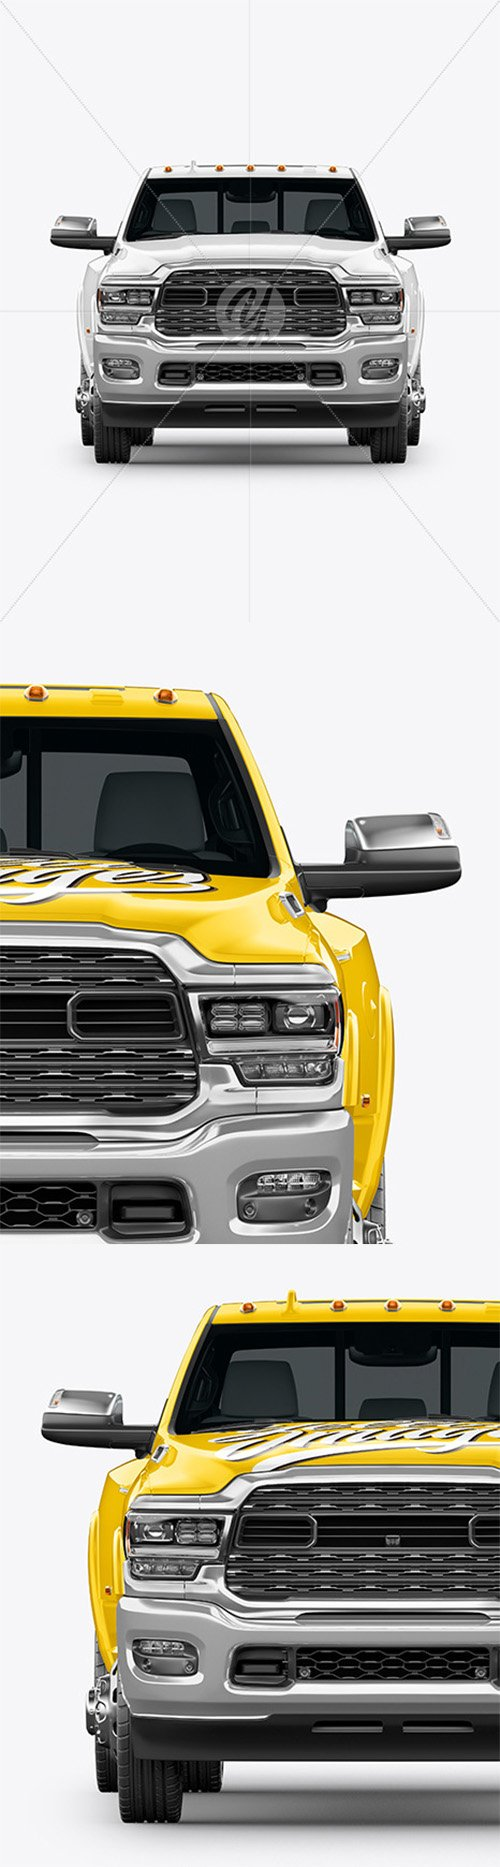 Pickup Truck Mockup - Front View 63896